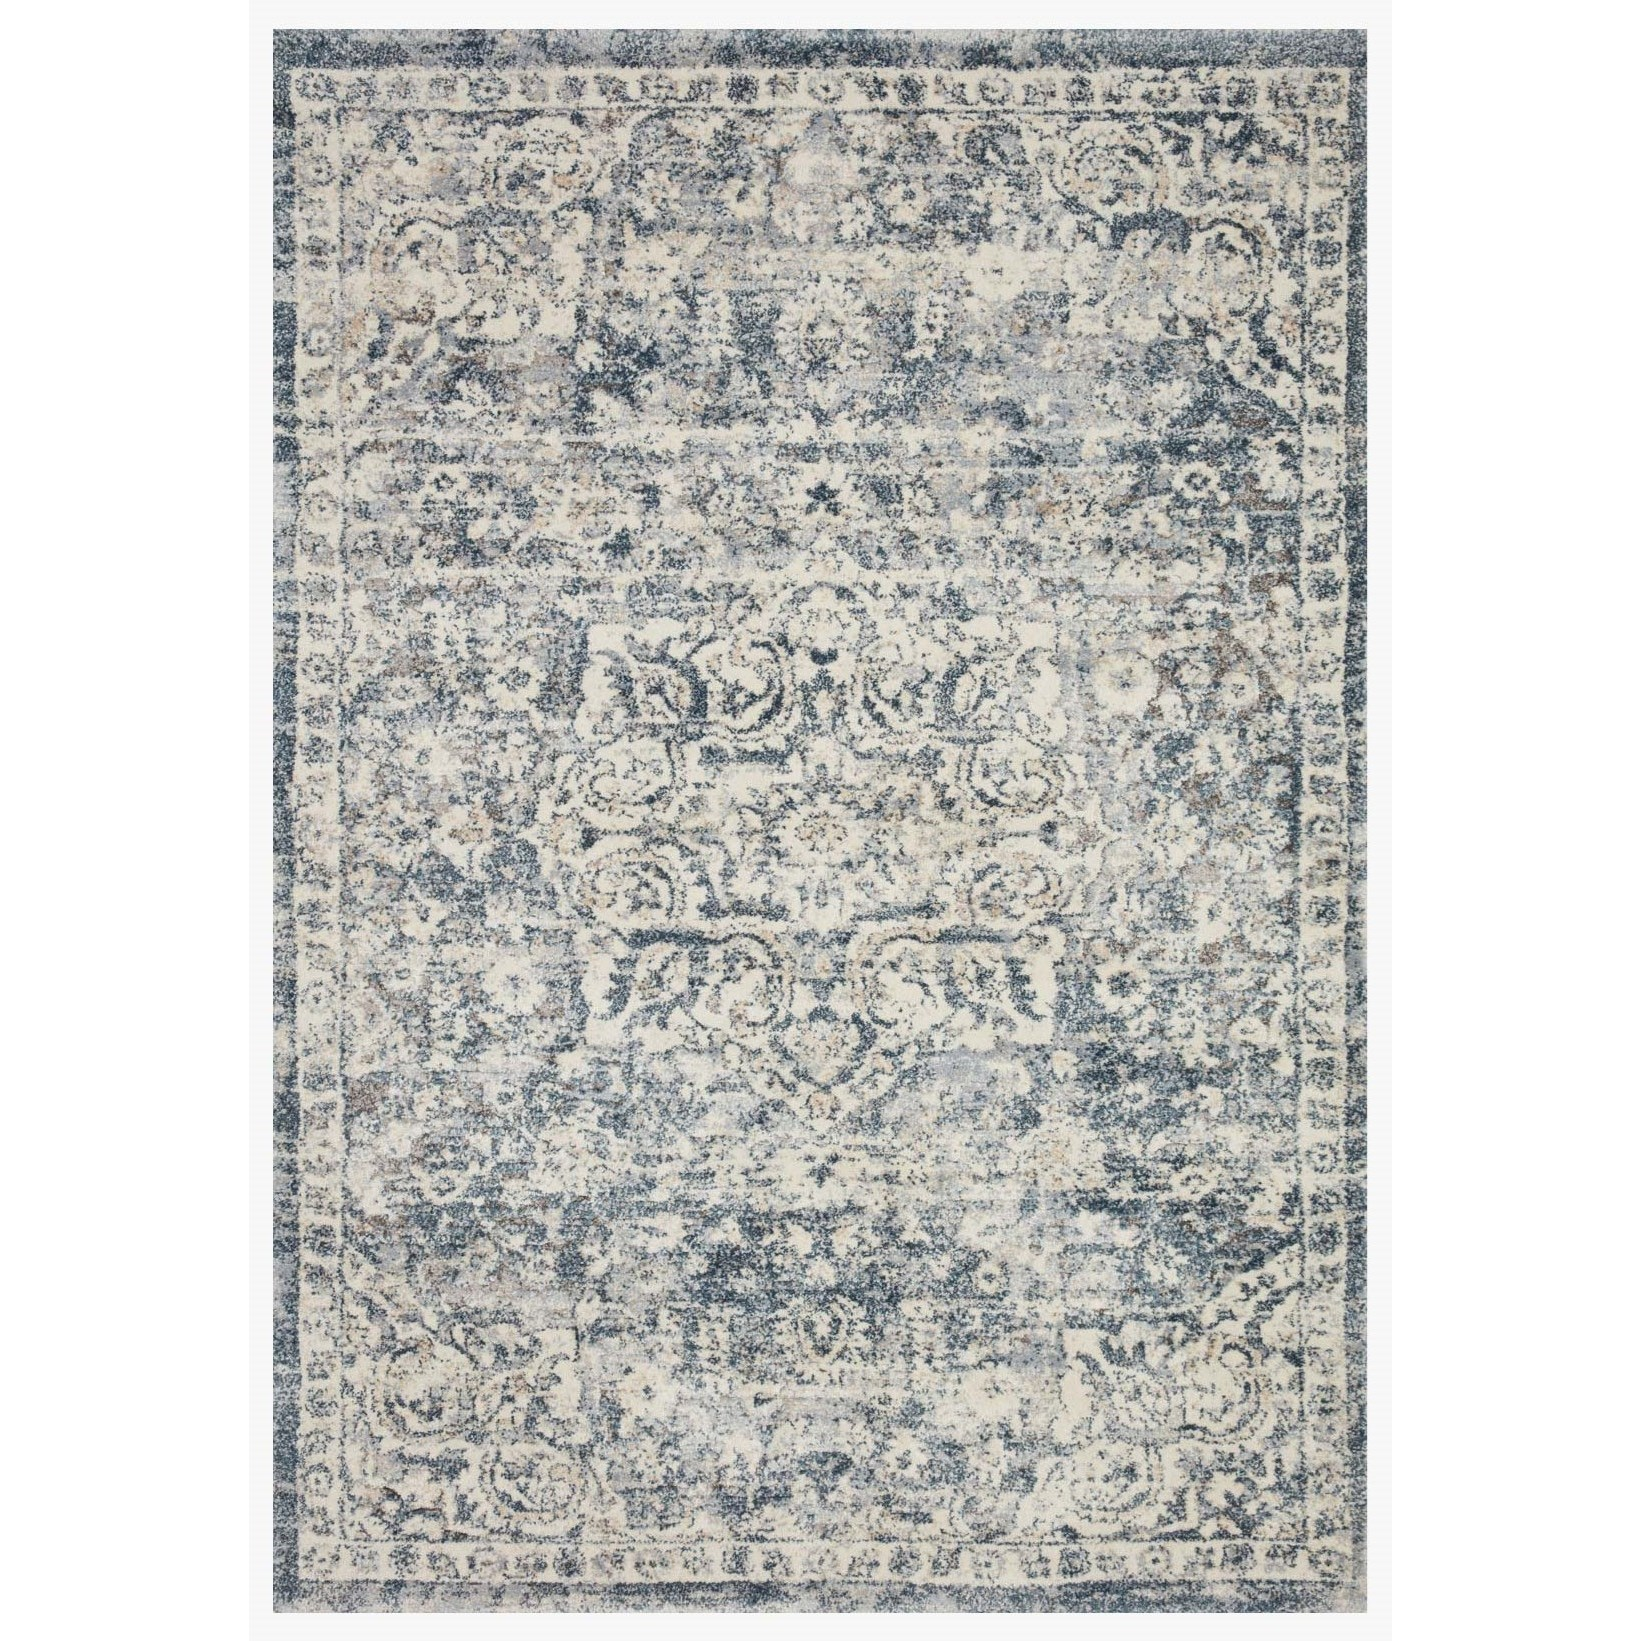 "Theory 5'3"" x 7'8"" Ivory / Blue Rug by Loloi Rugs at Belfort Furniture"